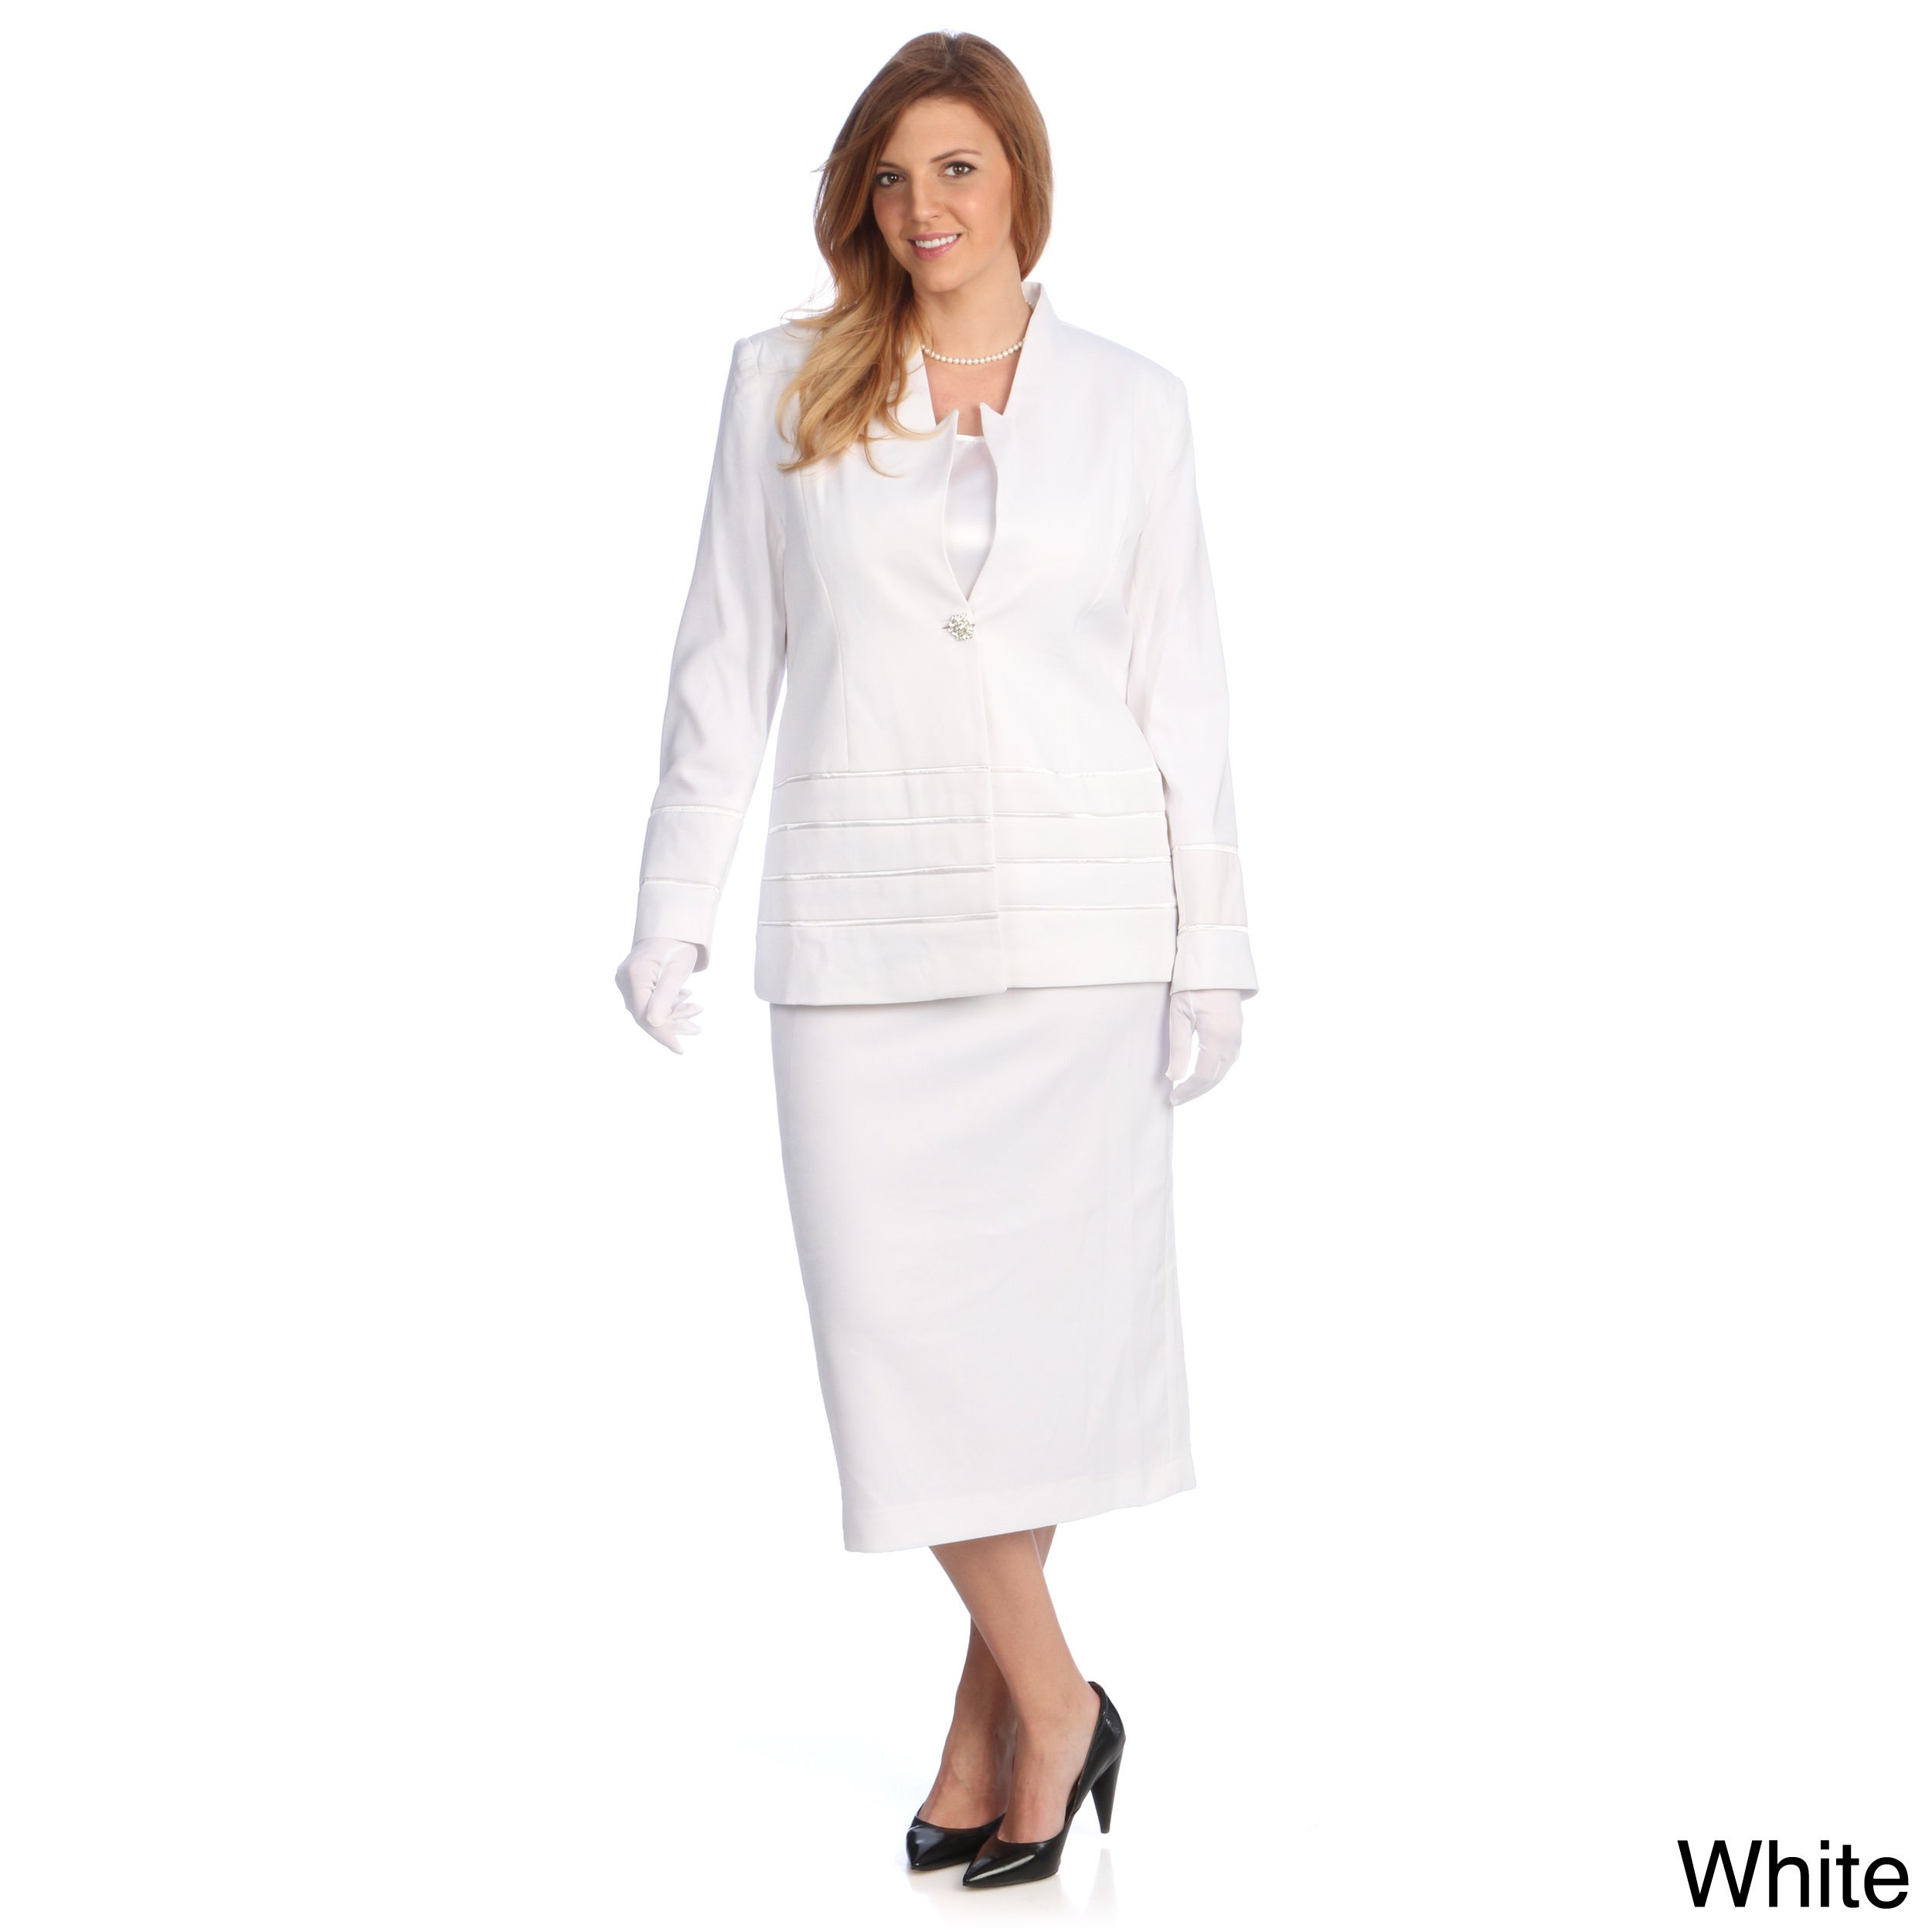 White Skirt Suit For Women 94